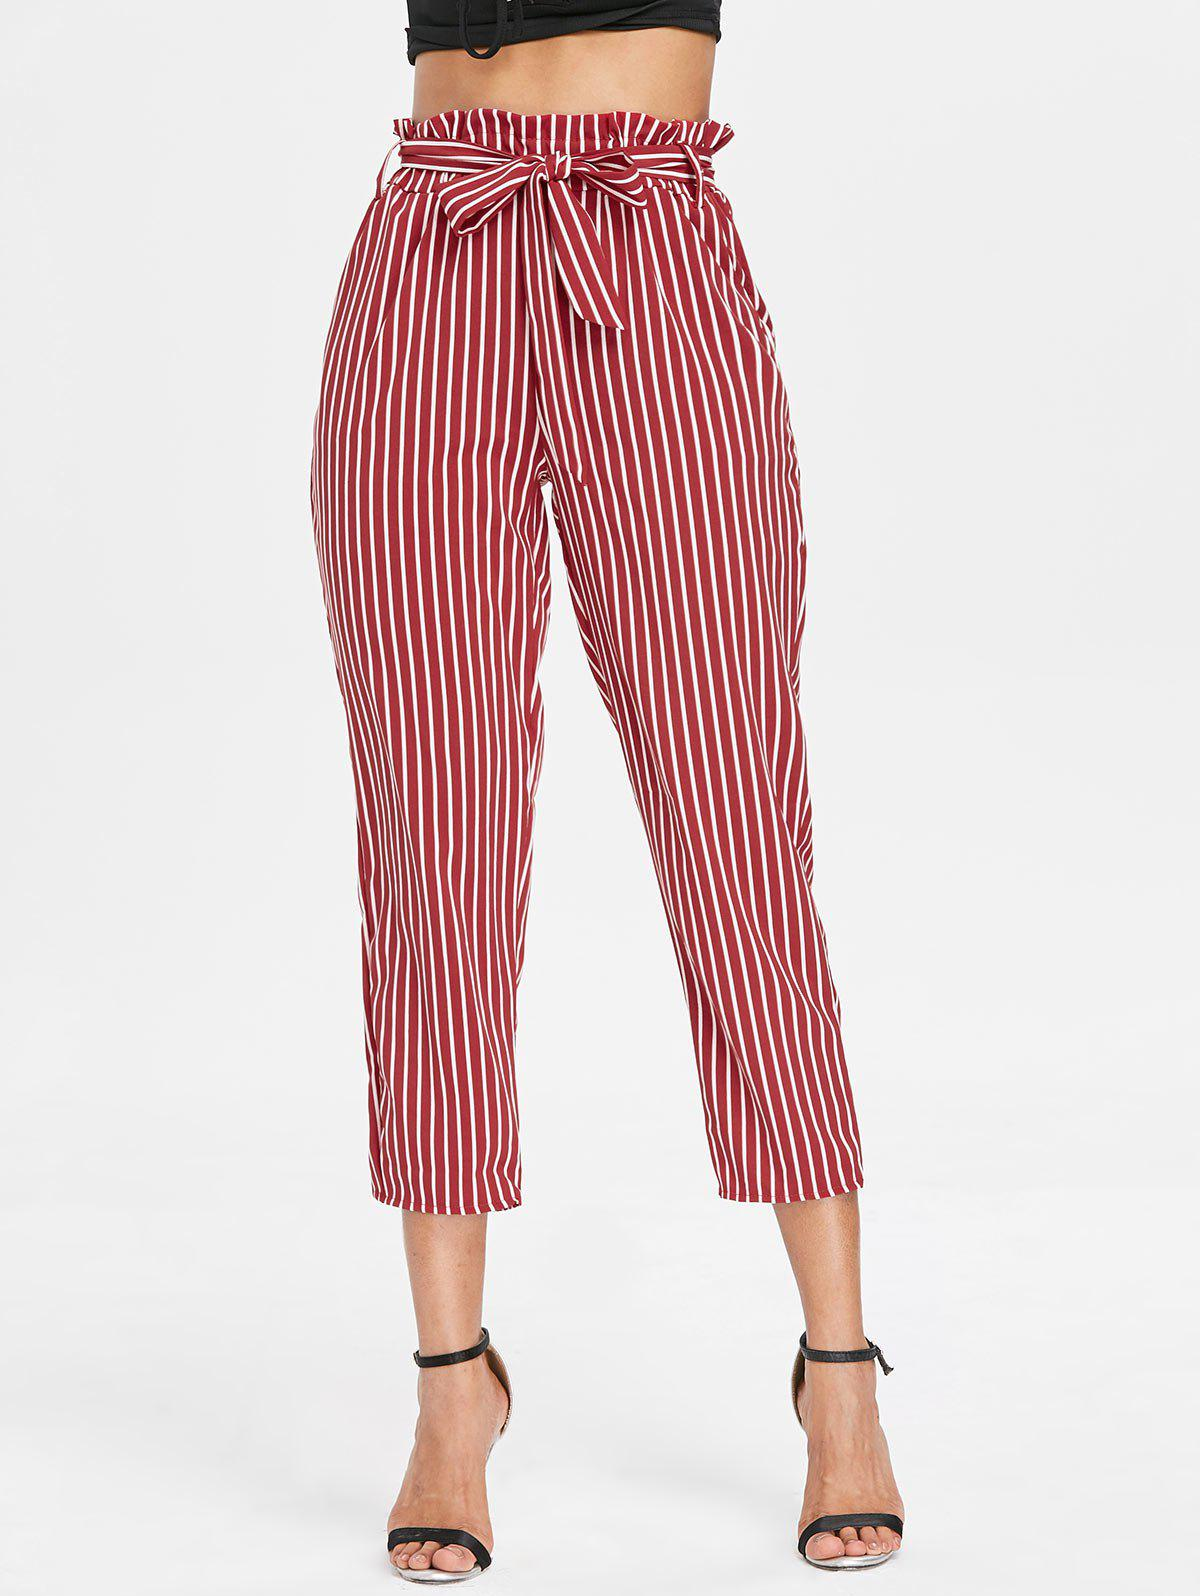 Striped Belted Tapered Pants - RED L